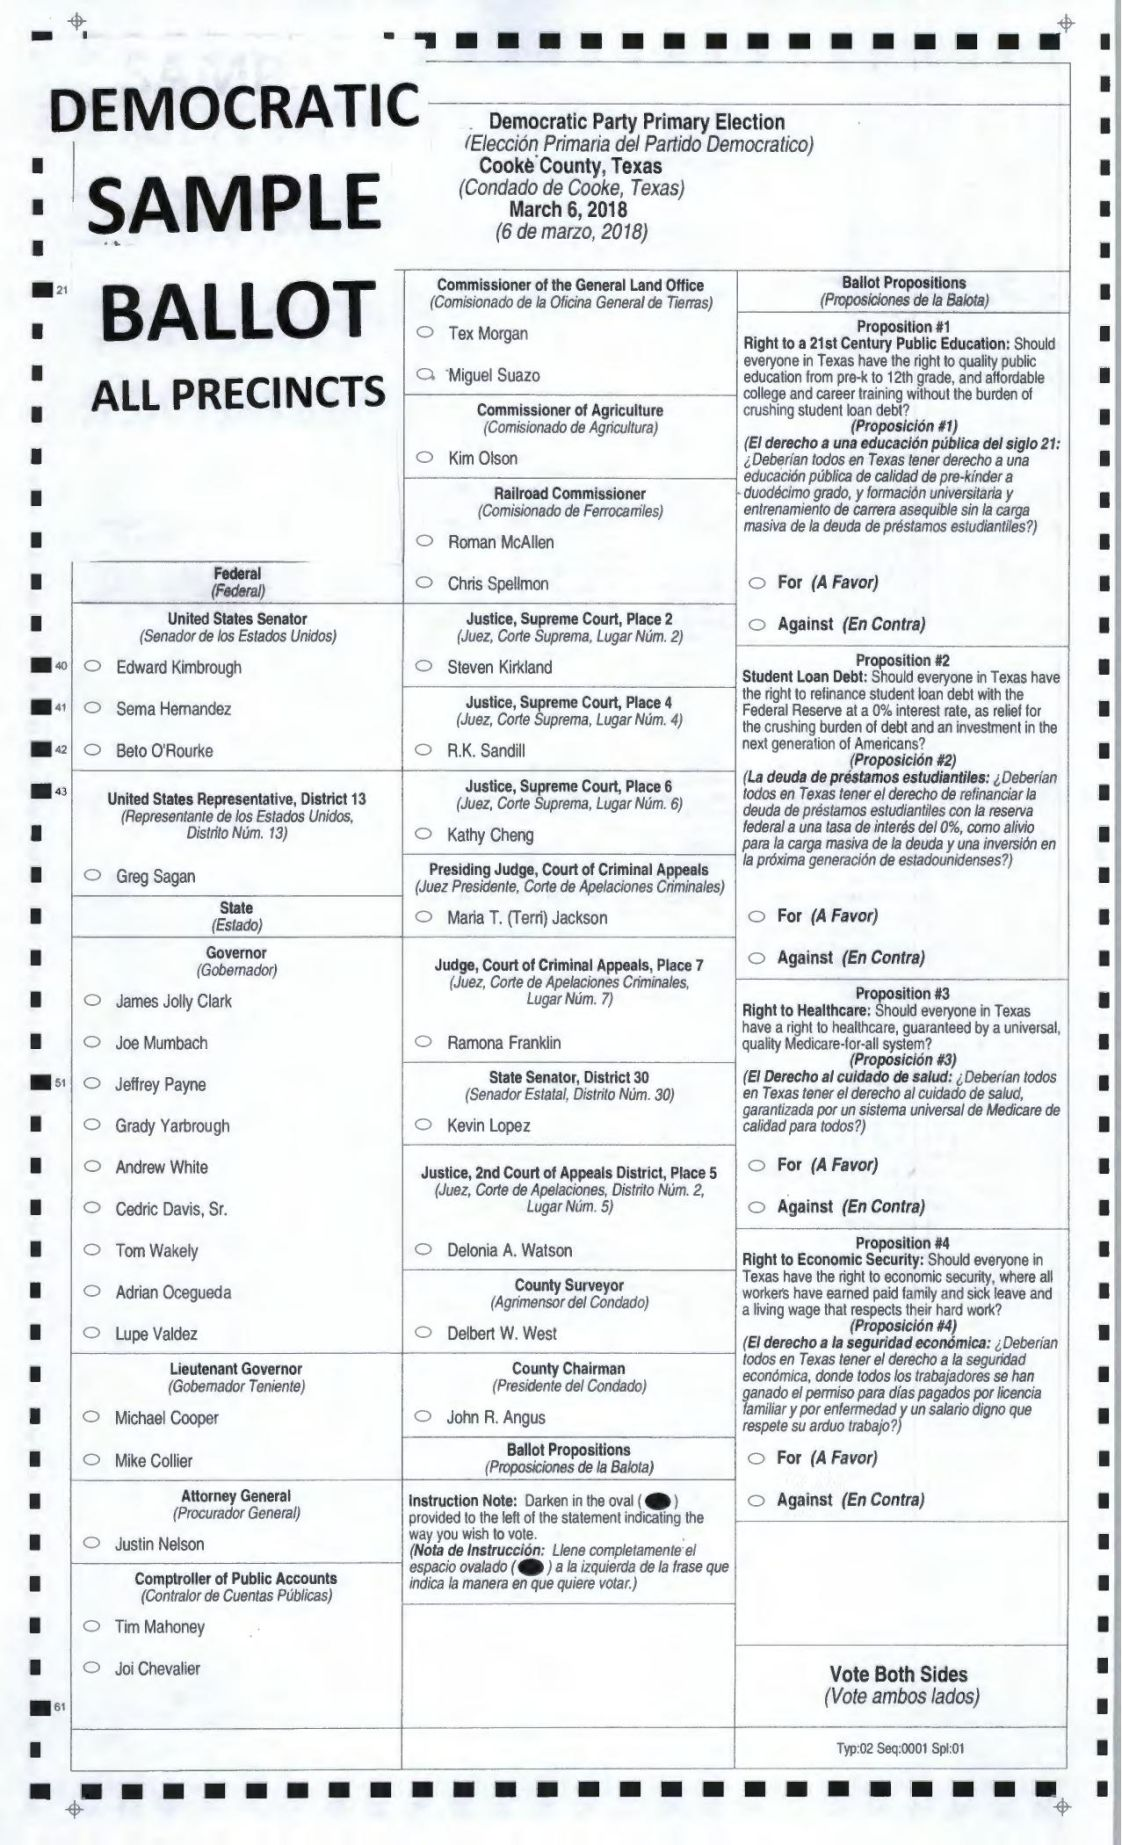 Democratic Party sample ballot for 2018 primary election